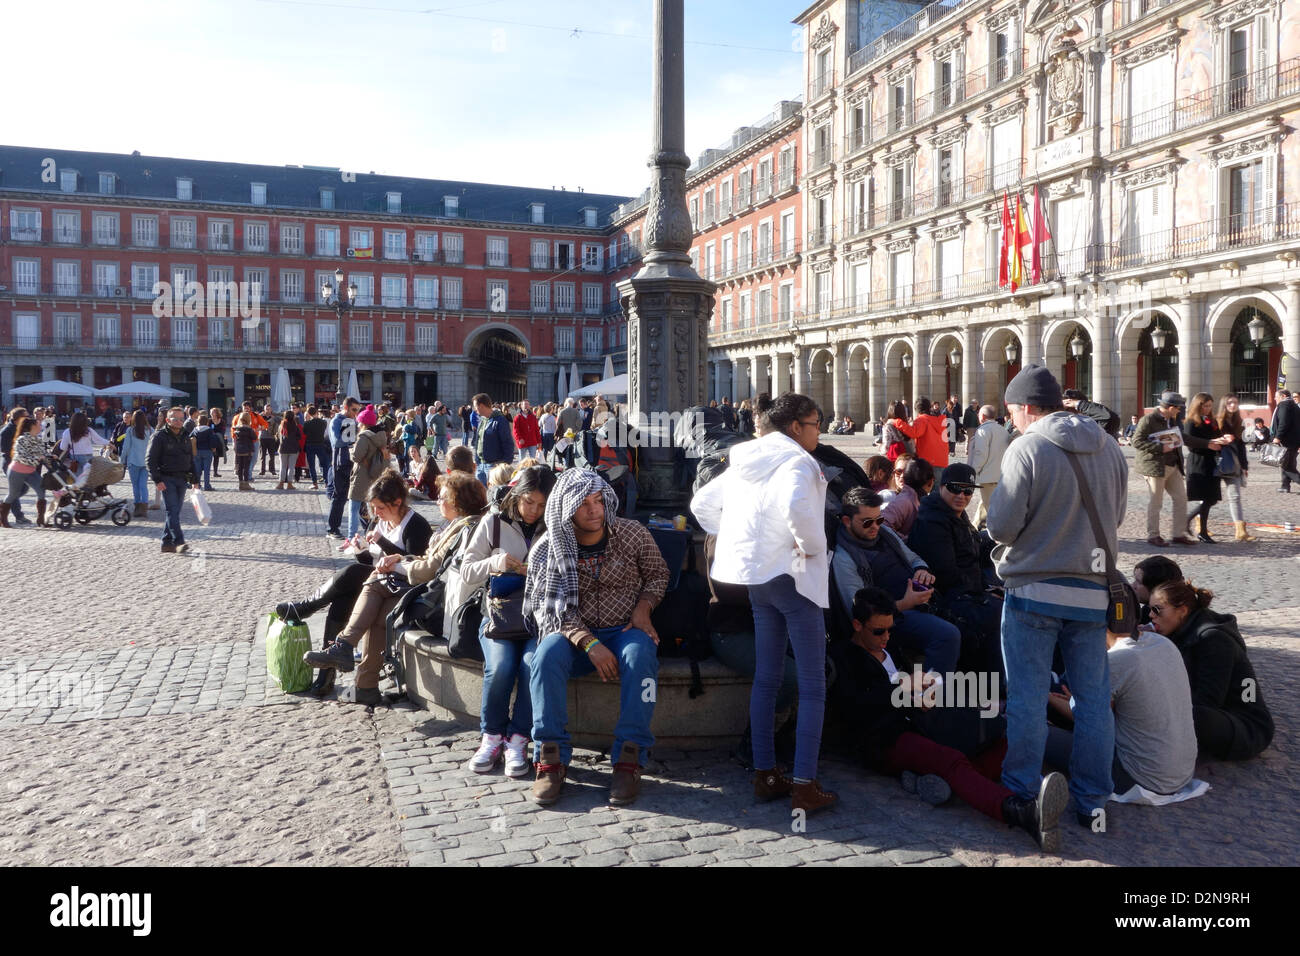 madrid spain plaza mayor kids people traveller traveler - Stock Image